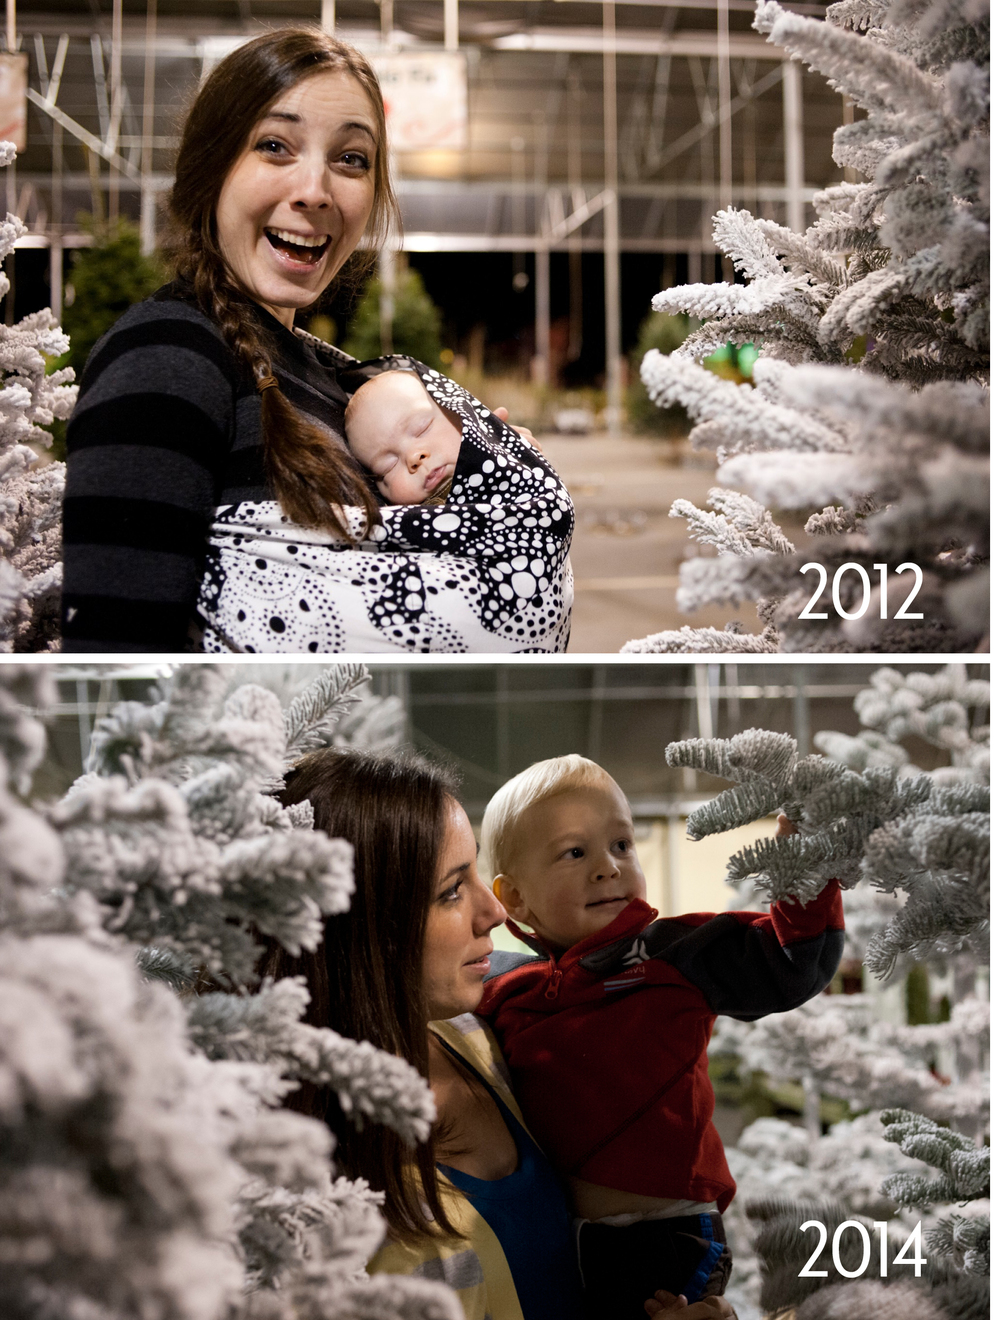 by the trees 2012 and 2014.jpg